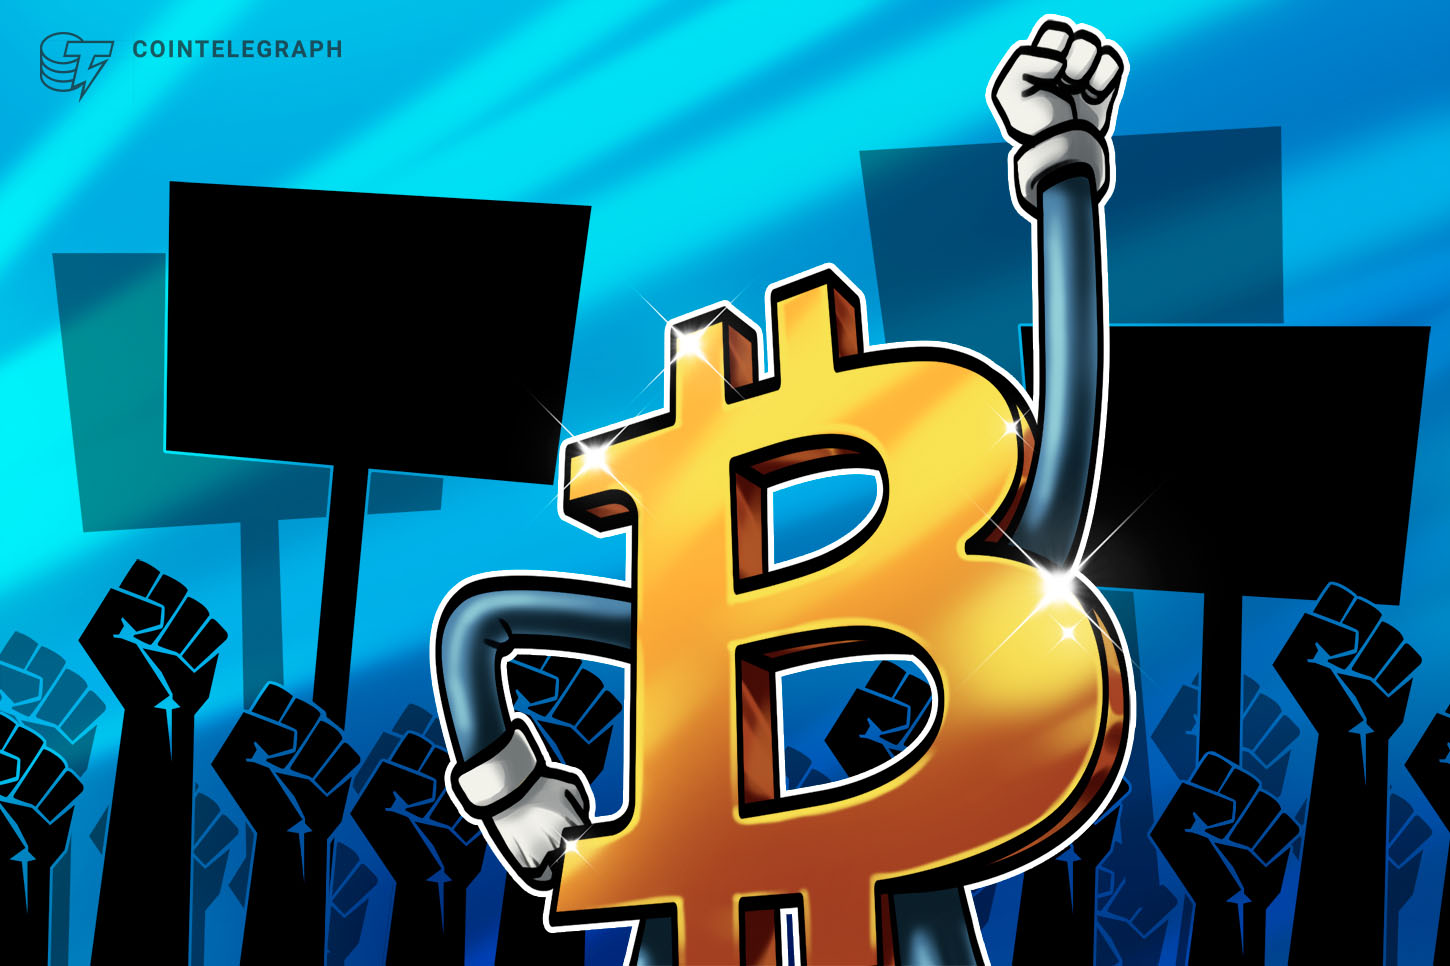 Bitcoin tests key level for $40K BTC price dip as altcoins bleed